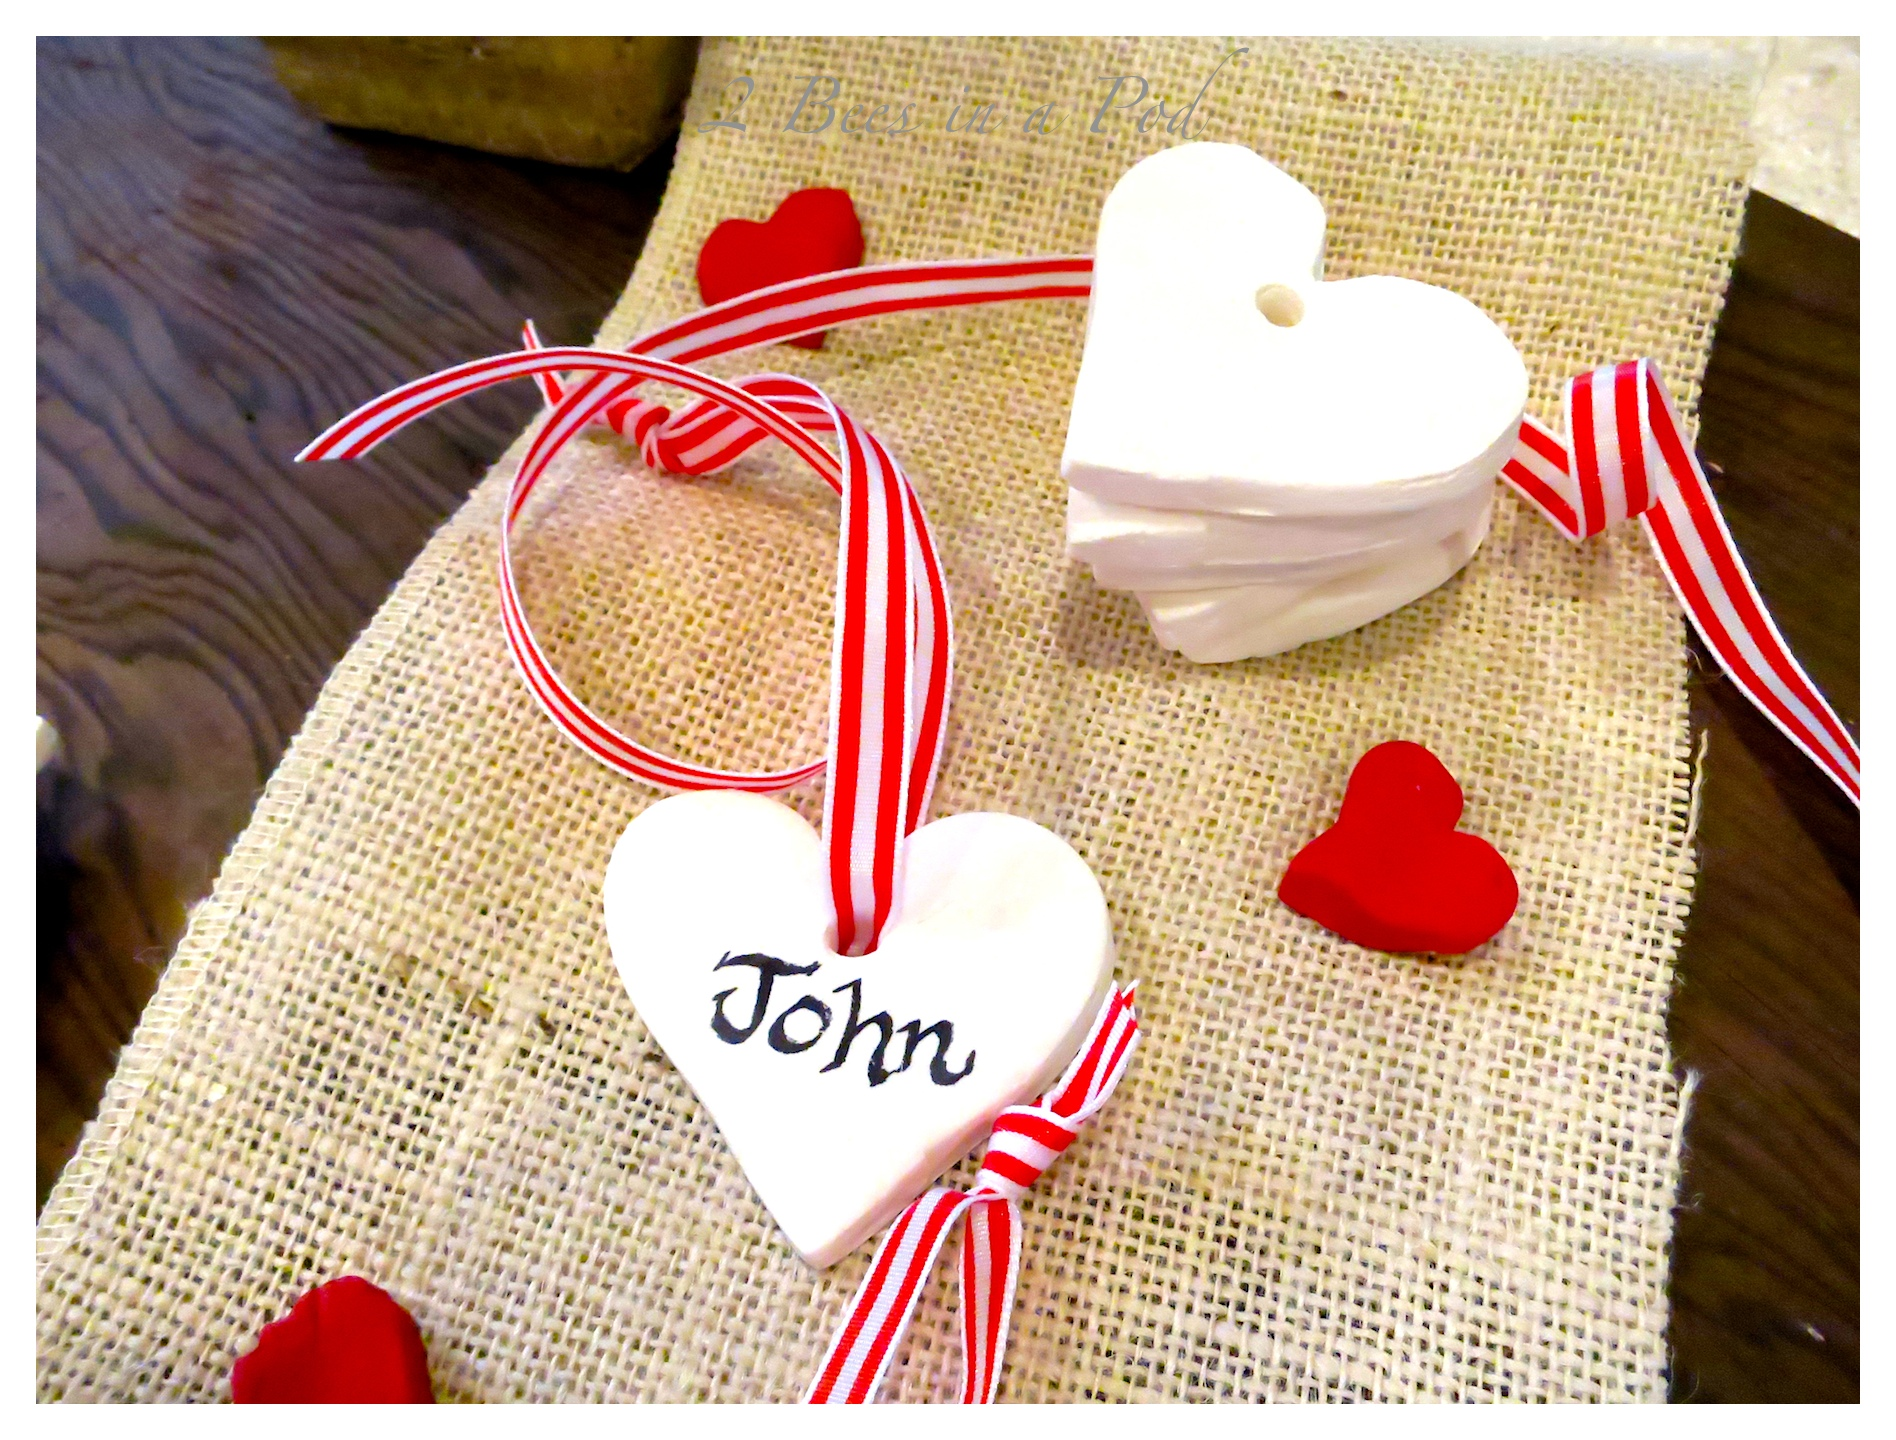 Homemade white clay gift tags for Valentines Day. Very easy to make clay using baking soda, corn starch and water. Use any cookie cutters or cutouts. Bake in the oven and the dough hardens. Very cute!!